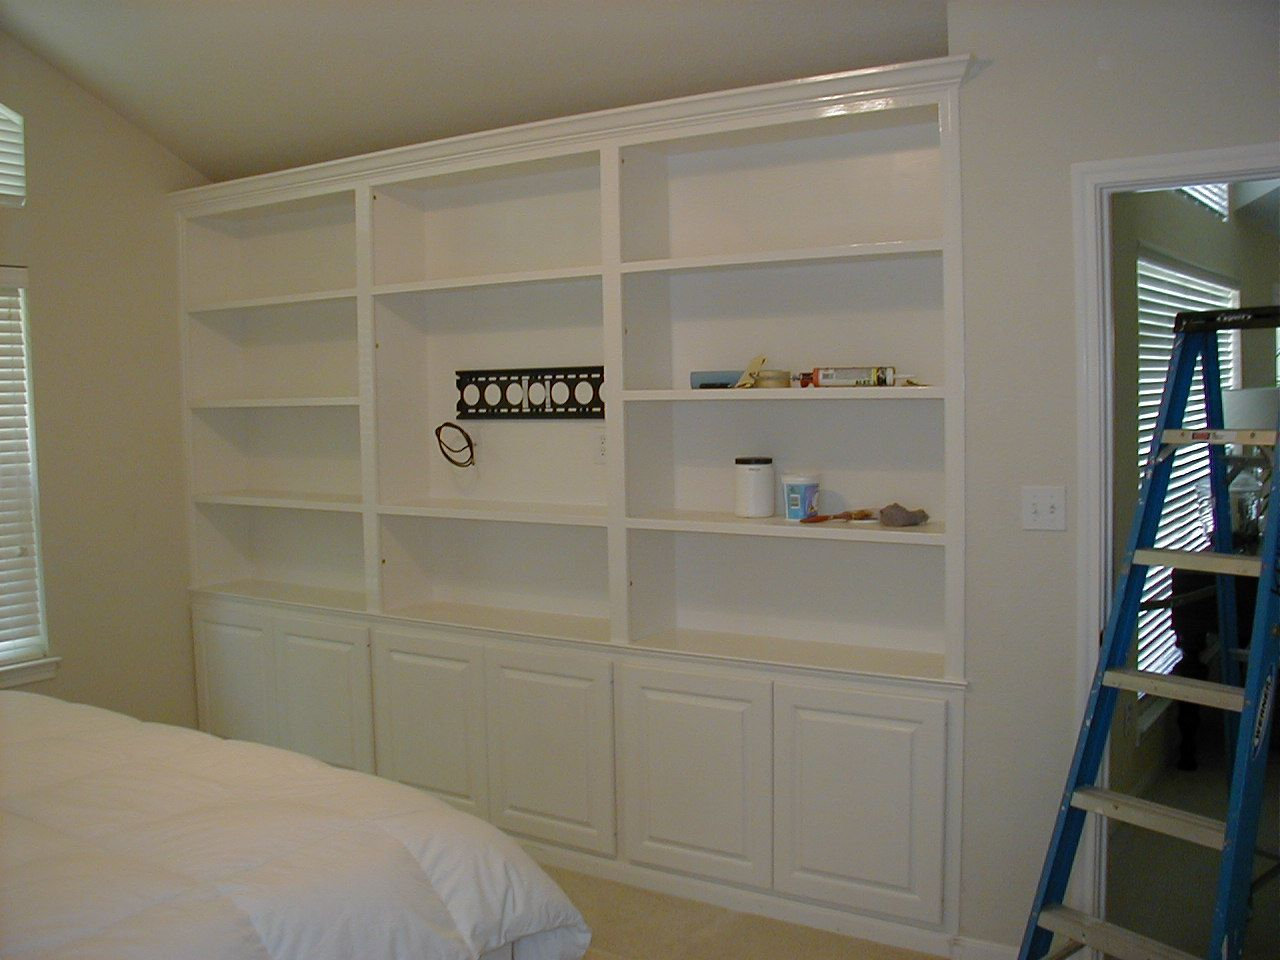 Images Of Wall Mounted Tv With Built In Cabinets